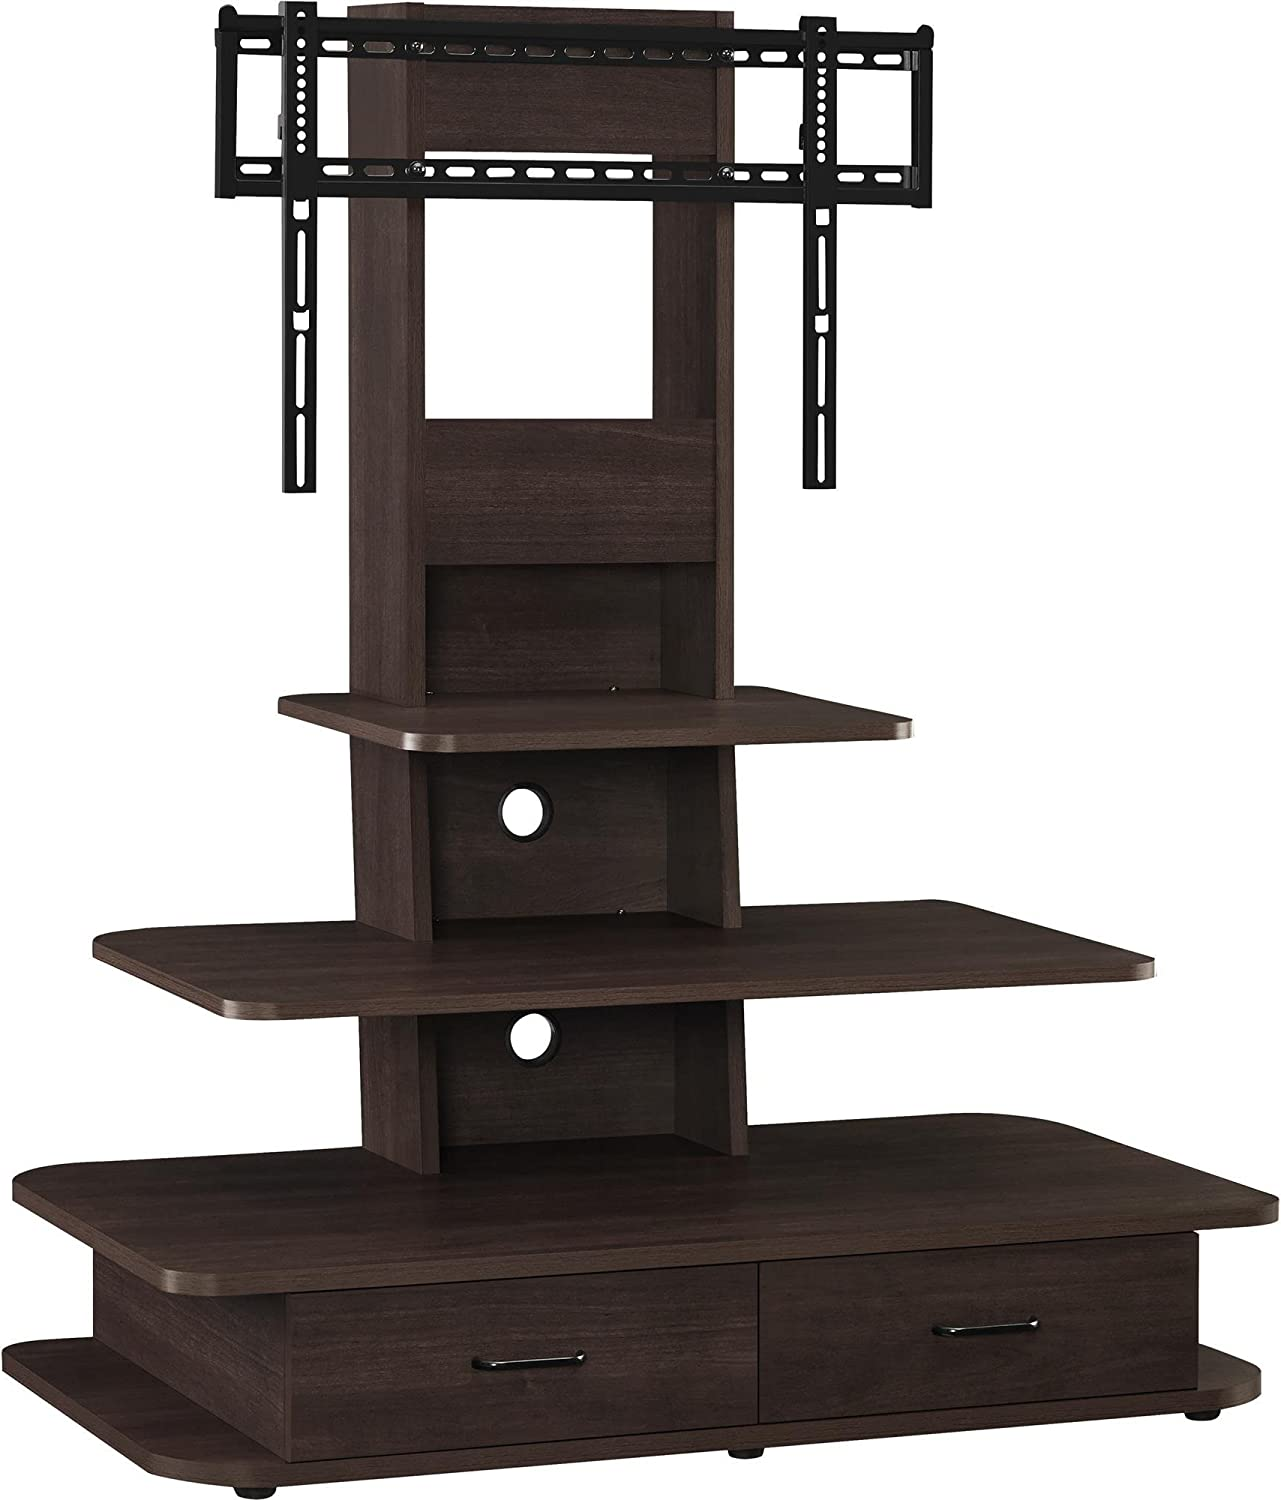 Ameriwood Home Galaxy TV Stand with Mount and Drawers for TVs up to 70  Wide, Espresso